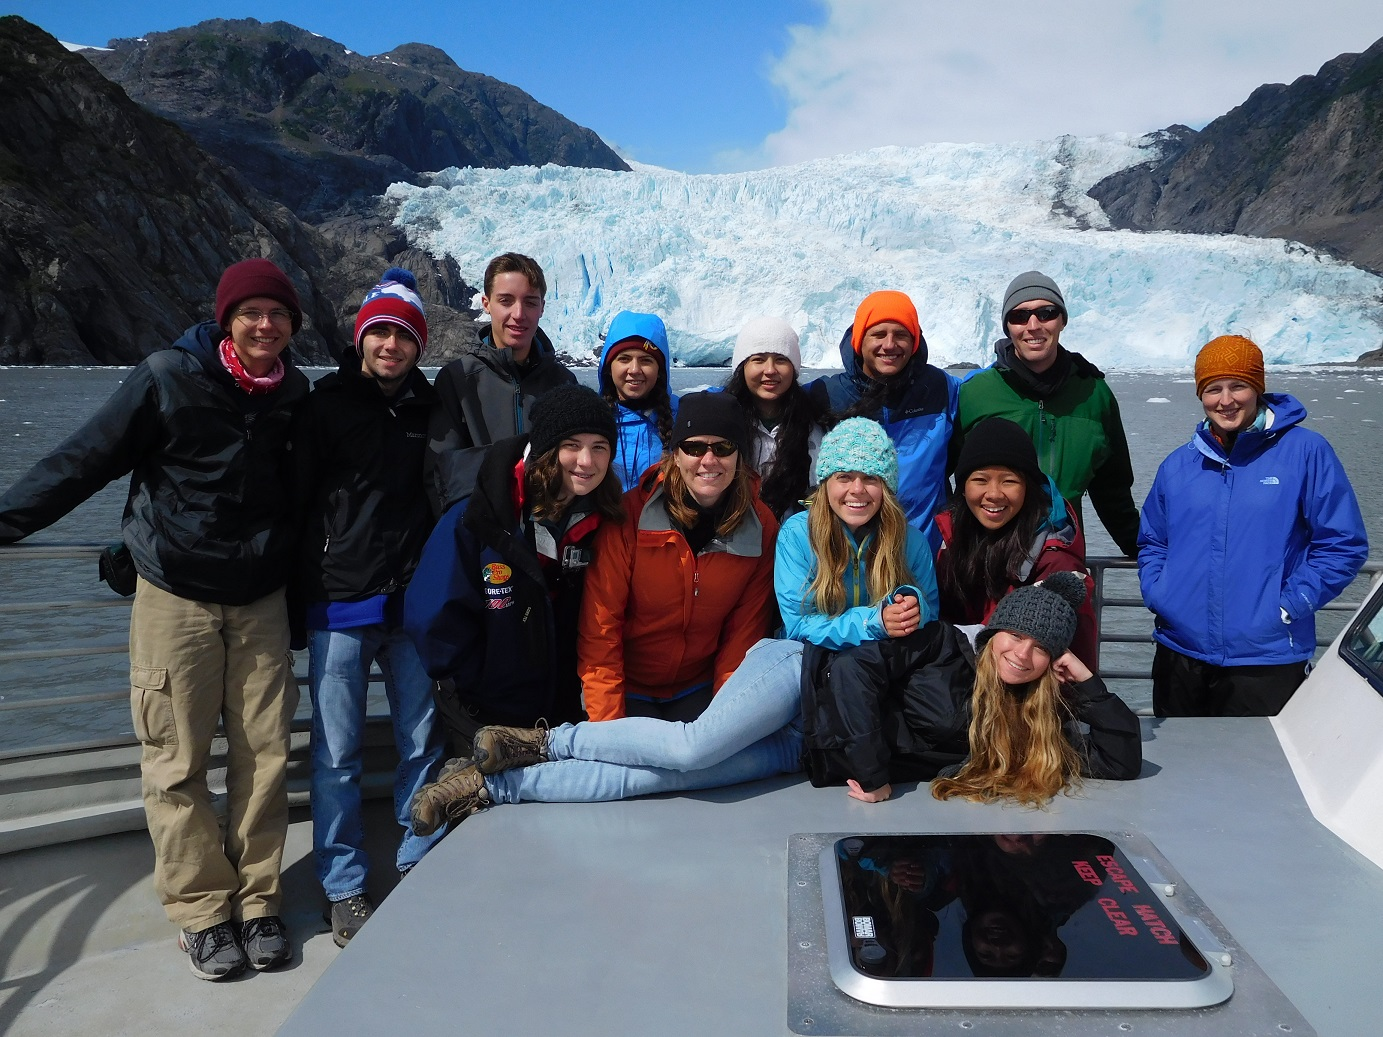 Ocean Lakes students took a break for a group photo. Pictured here are top row:  Christopher Lucy, Samuel Edwards, Hunter Voltz, Emma Hultin, Isabella Gonzalez, Robert Mastroianni, Sean Hoppes (No Barriers Youth Expedition leader); middle Row, Samantha Revolinsky, Laura Wood (Teacher), Caroline Whitlow, Patricia Asiatico; bottom row, Maylin Waddell-Horan.